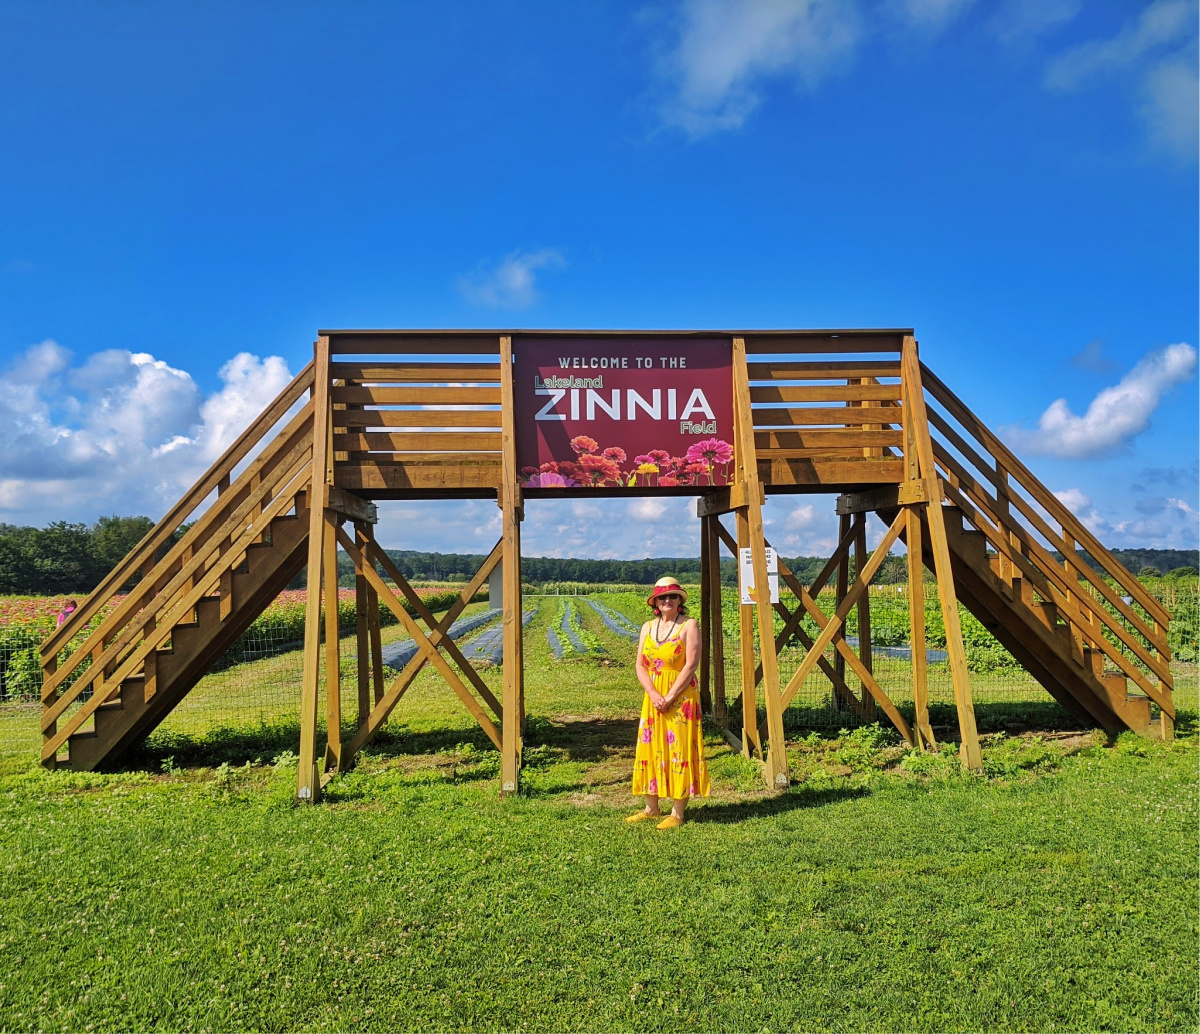 Lakeland Orchard & Cidery. A welcome sign to enter zinnia fields.